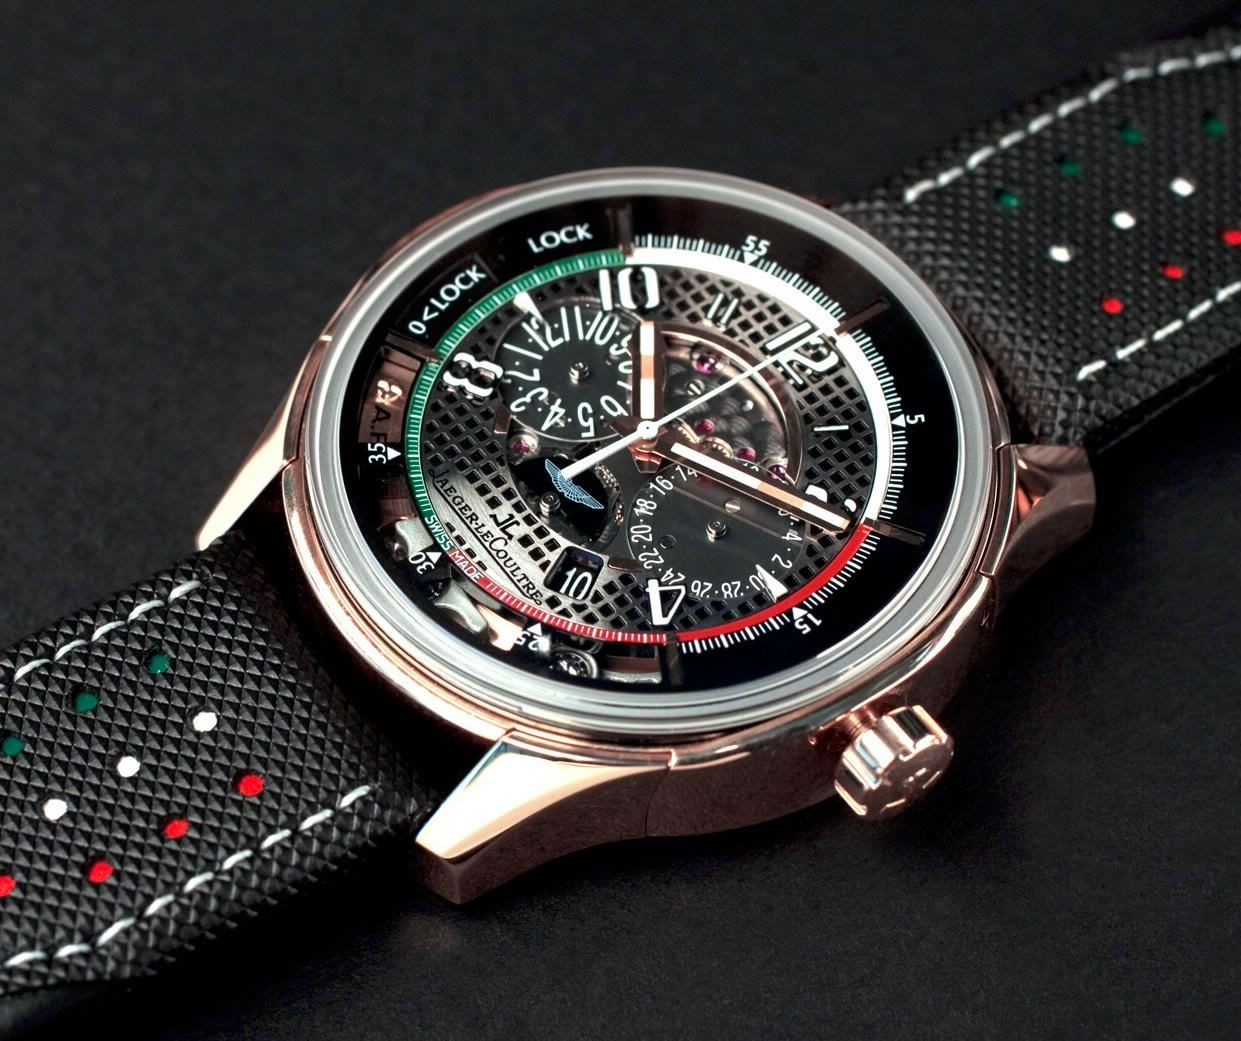 0b7b02d0ecf Jaeger-LeCoulter AMVOX2 Grand Chronograph is inspired by Aston Martin  racing driver